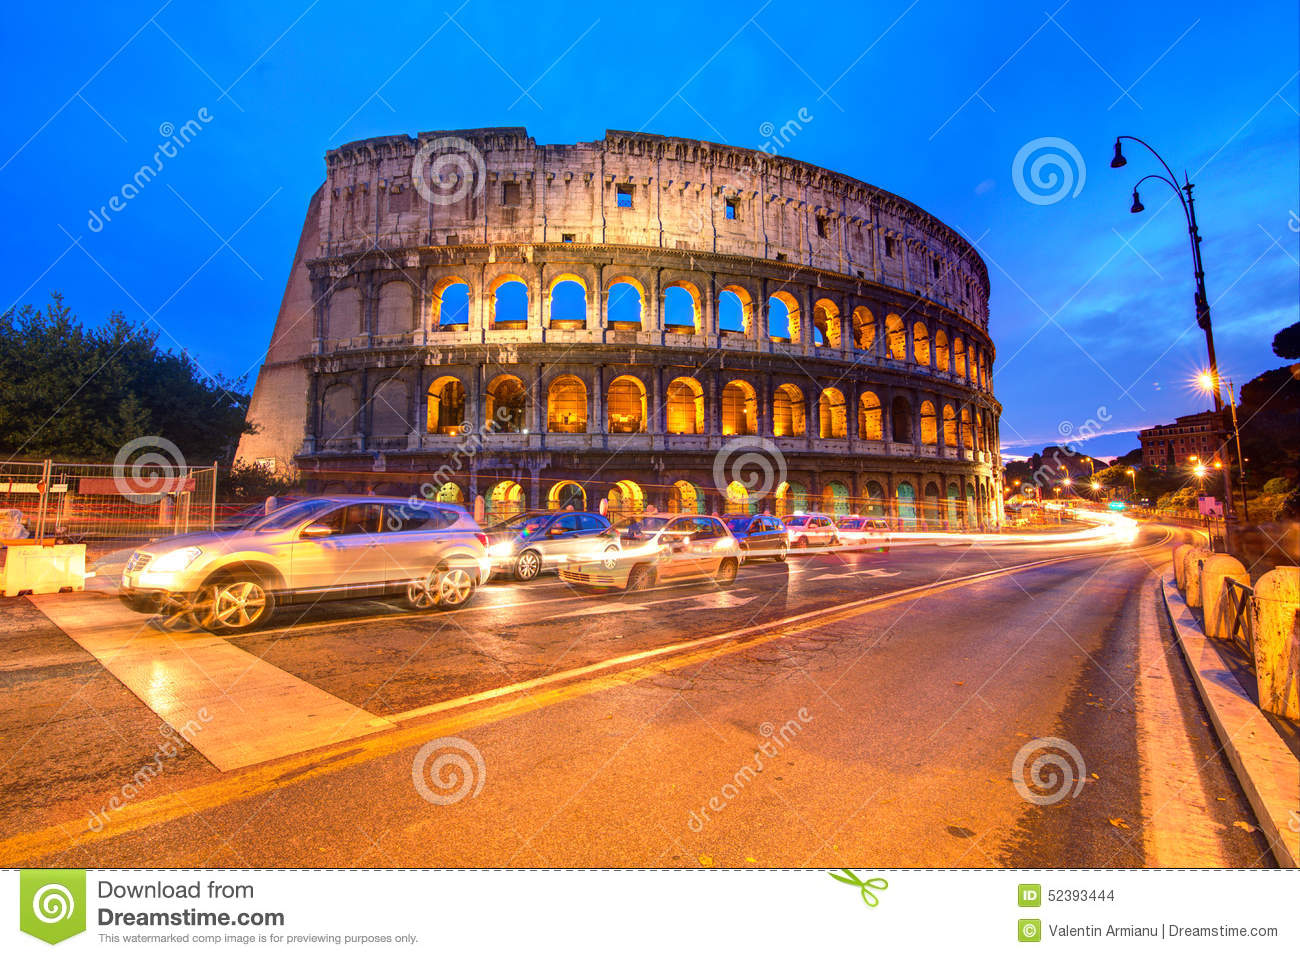 Coliseum in Rome by night, Italy